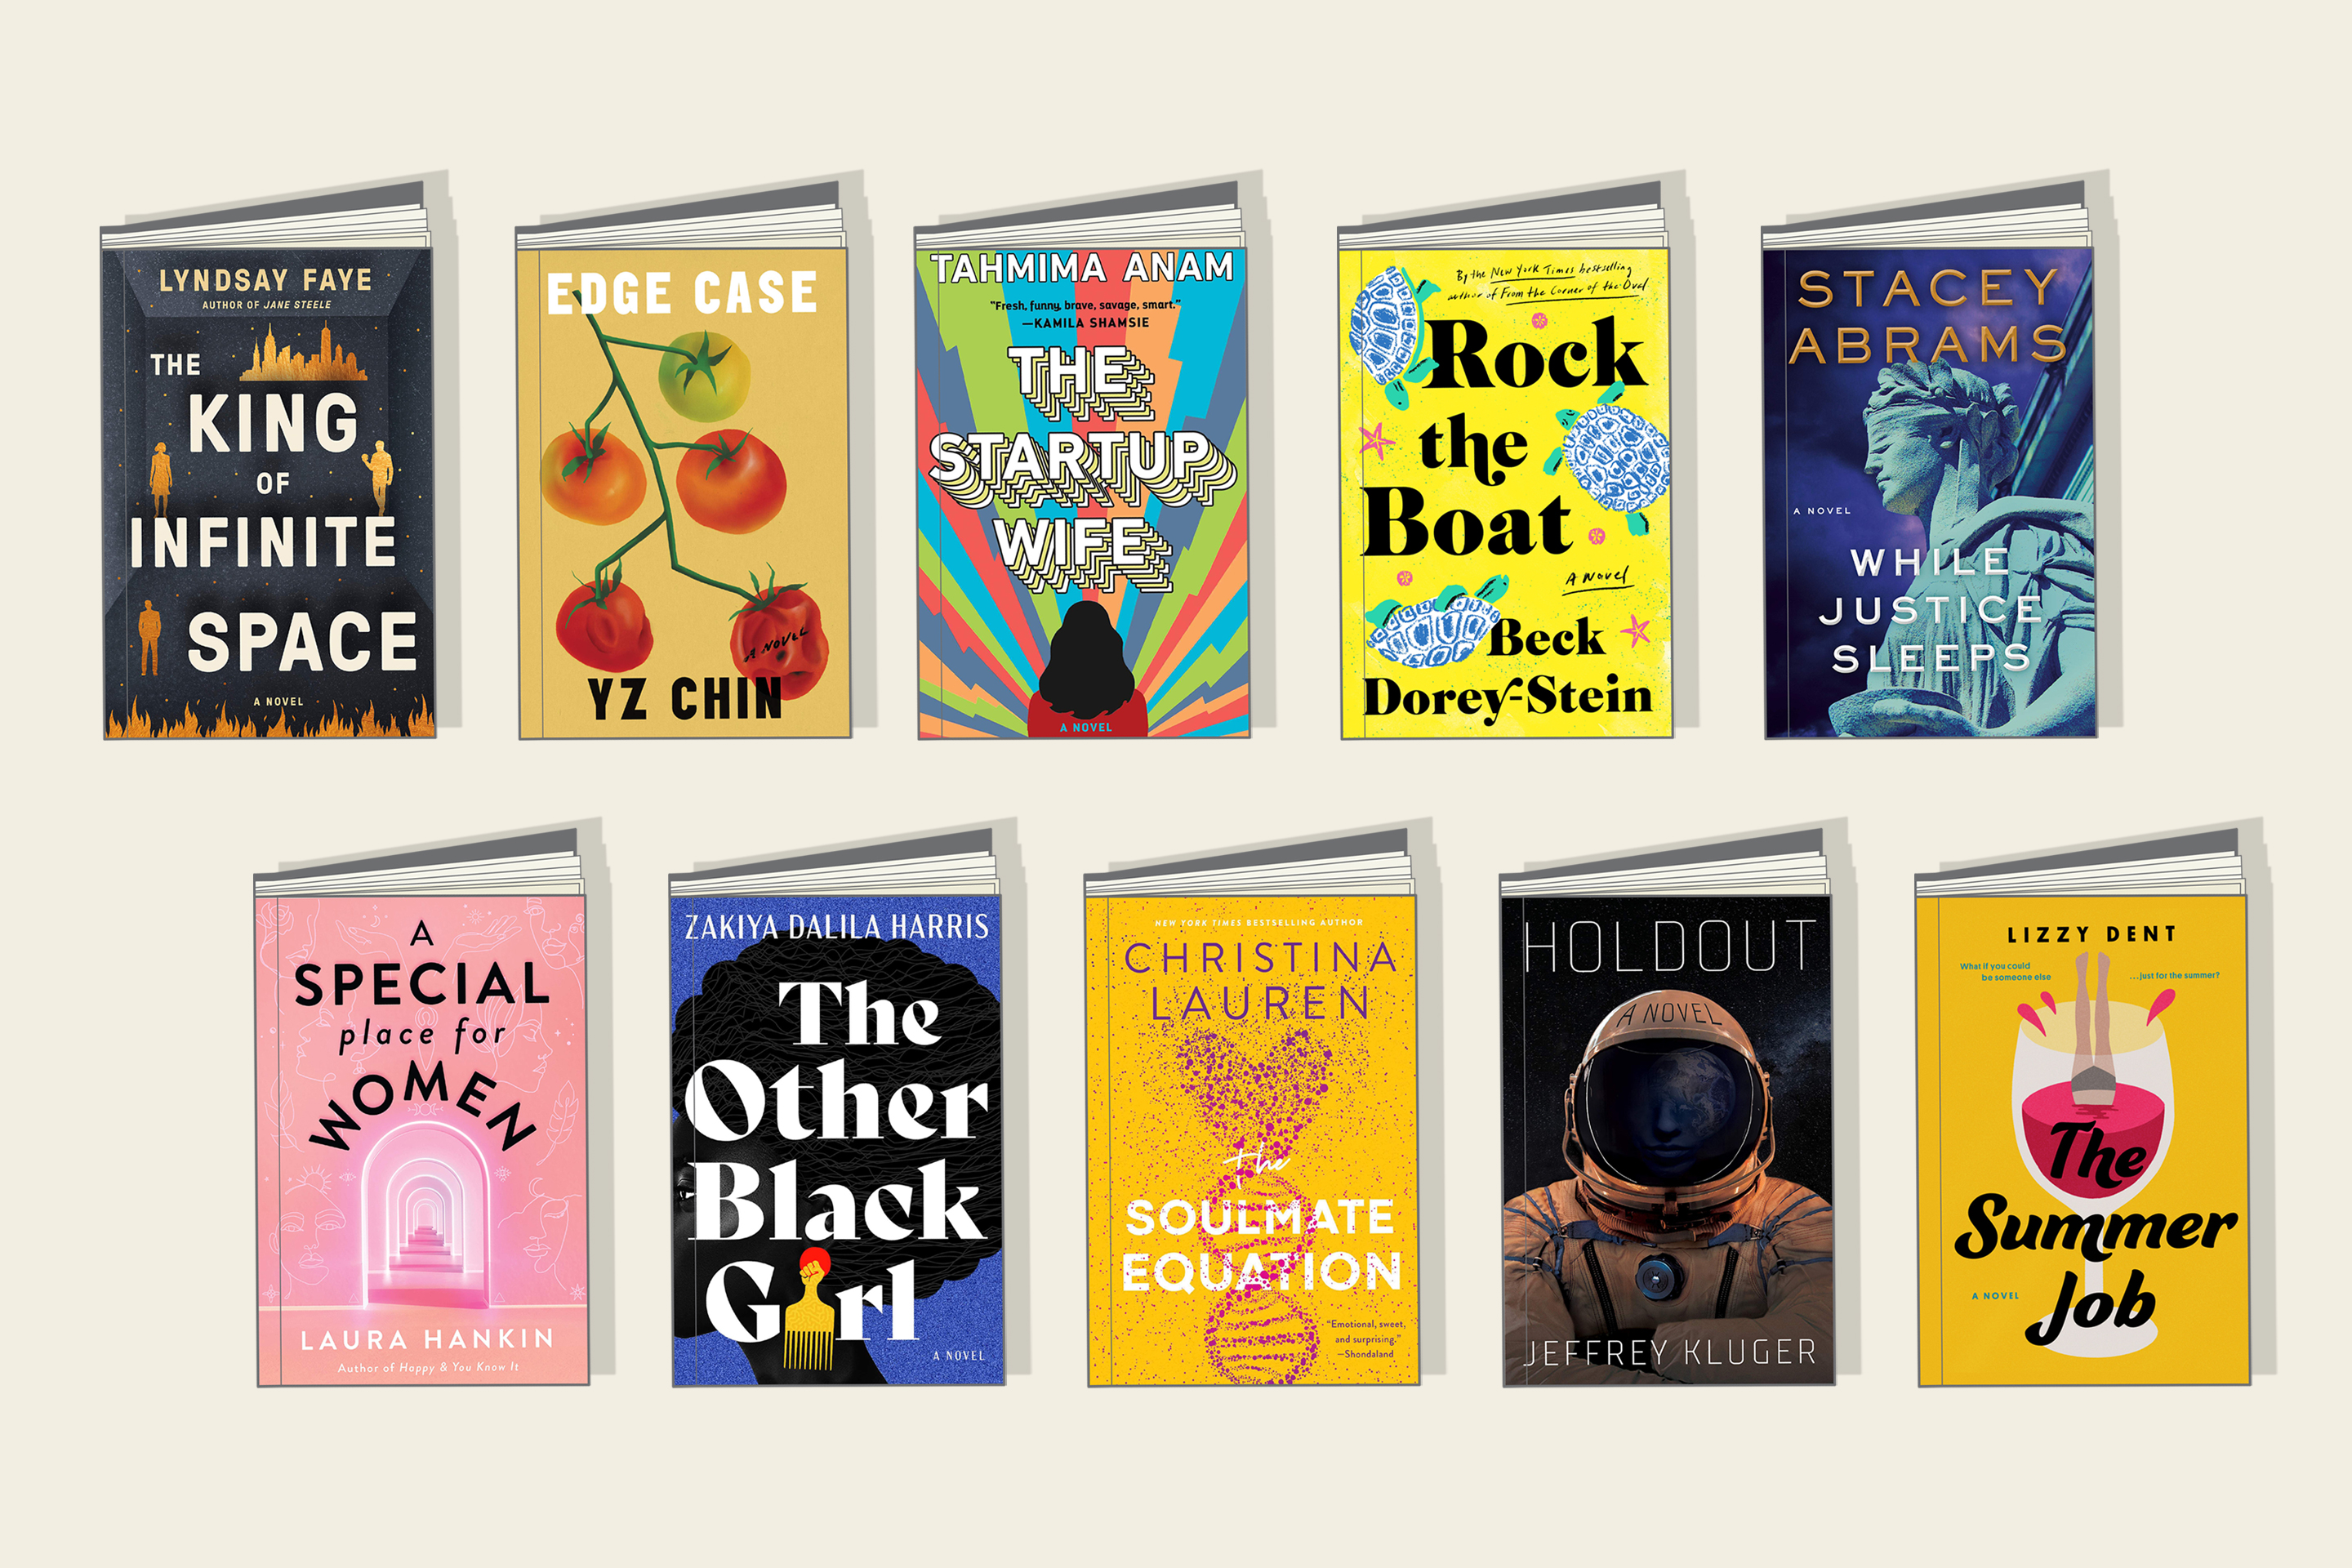 20 entertaining new books to read this summer   Fortune